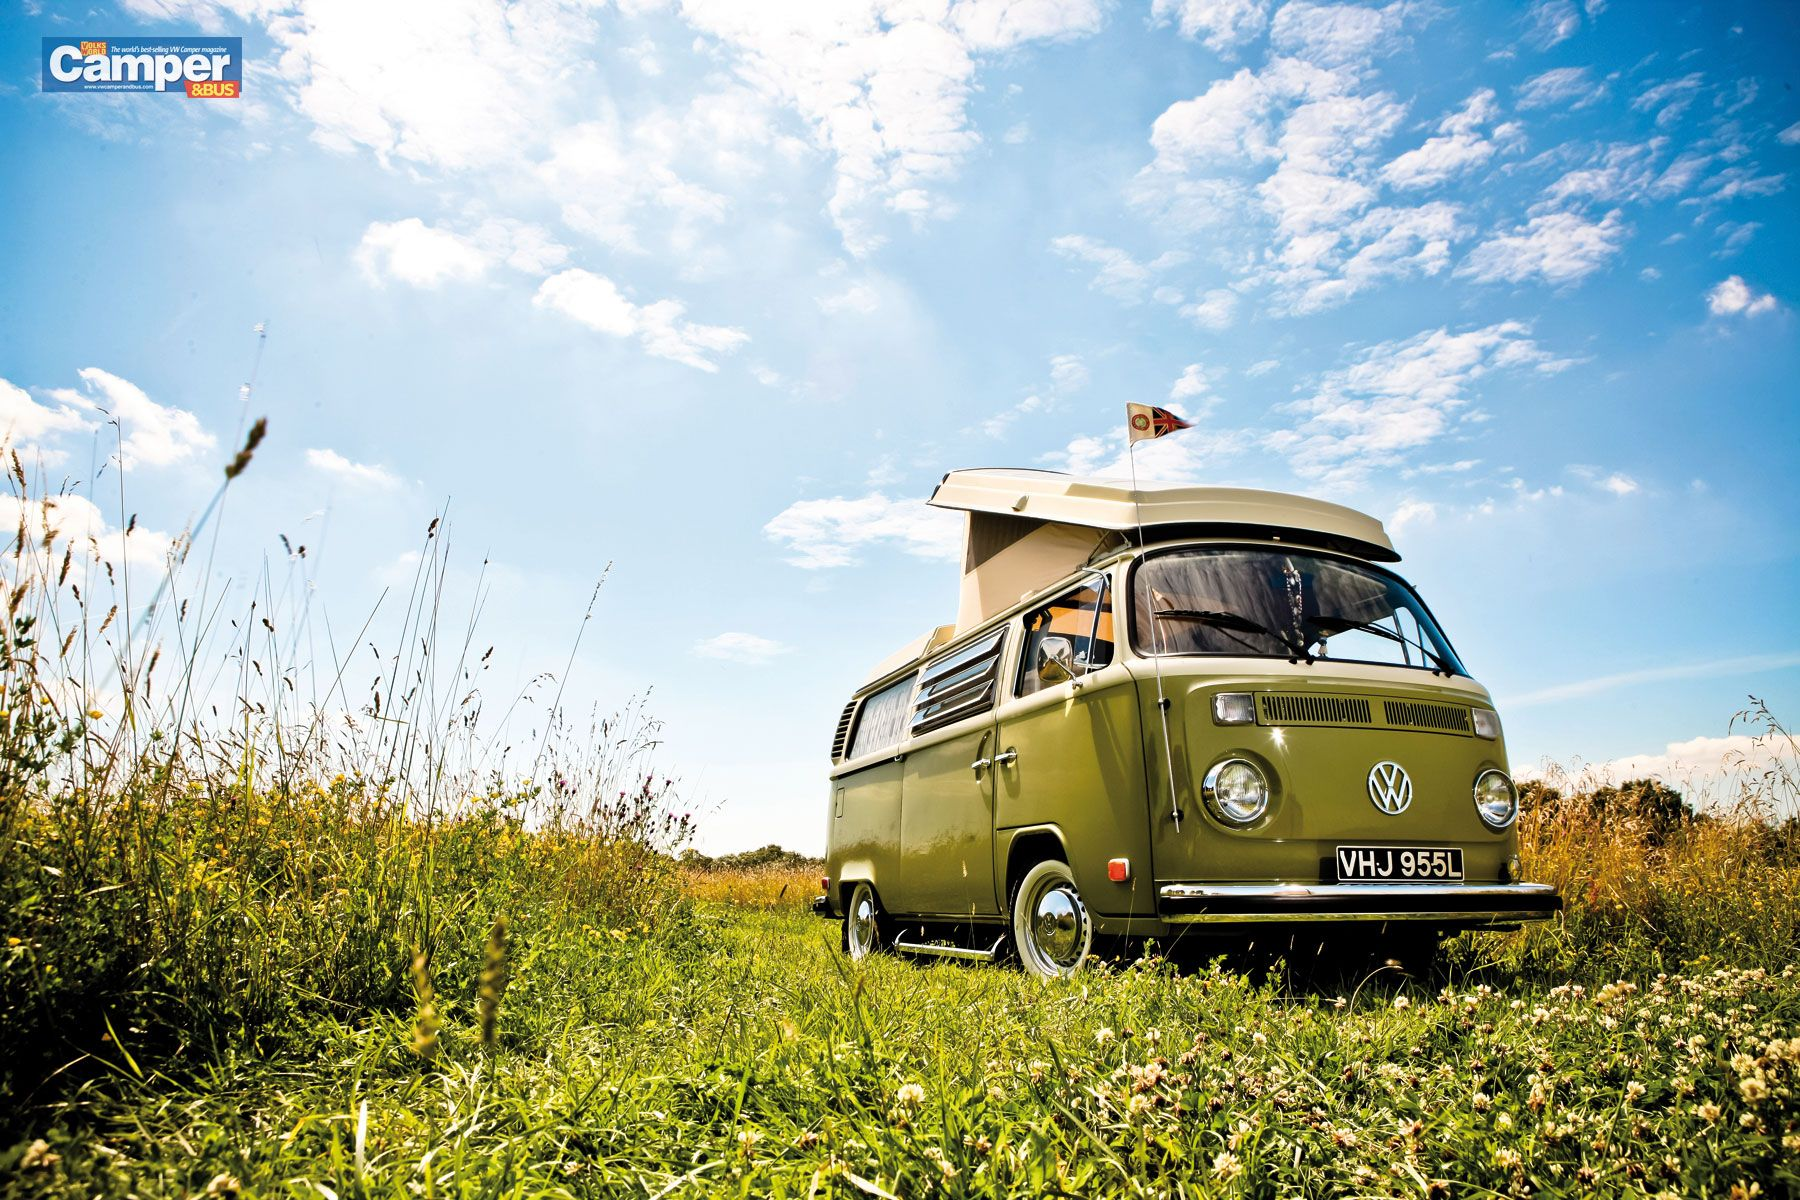 Volkswagen Bus Wallpaper For Windows #8Ey